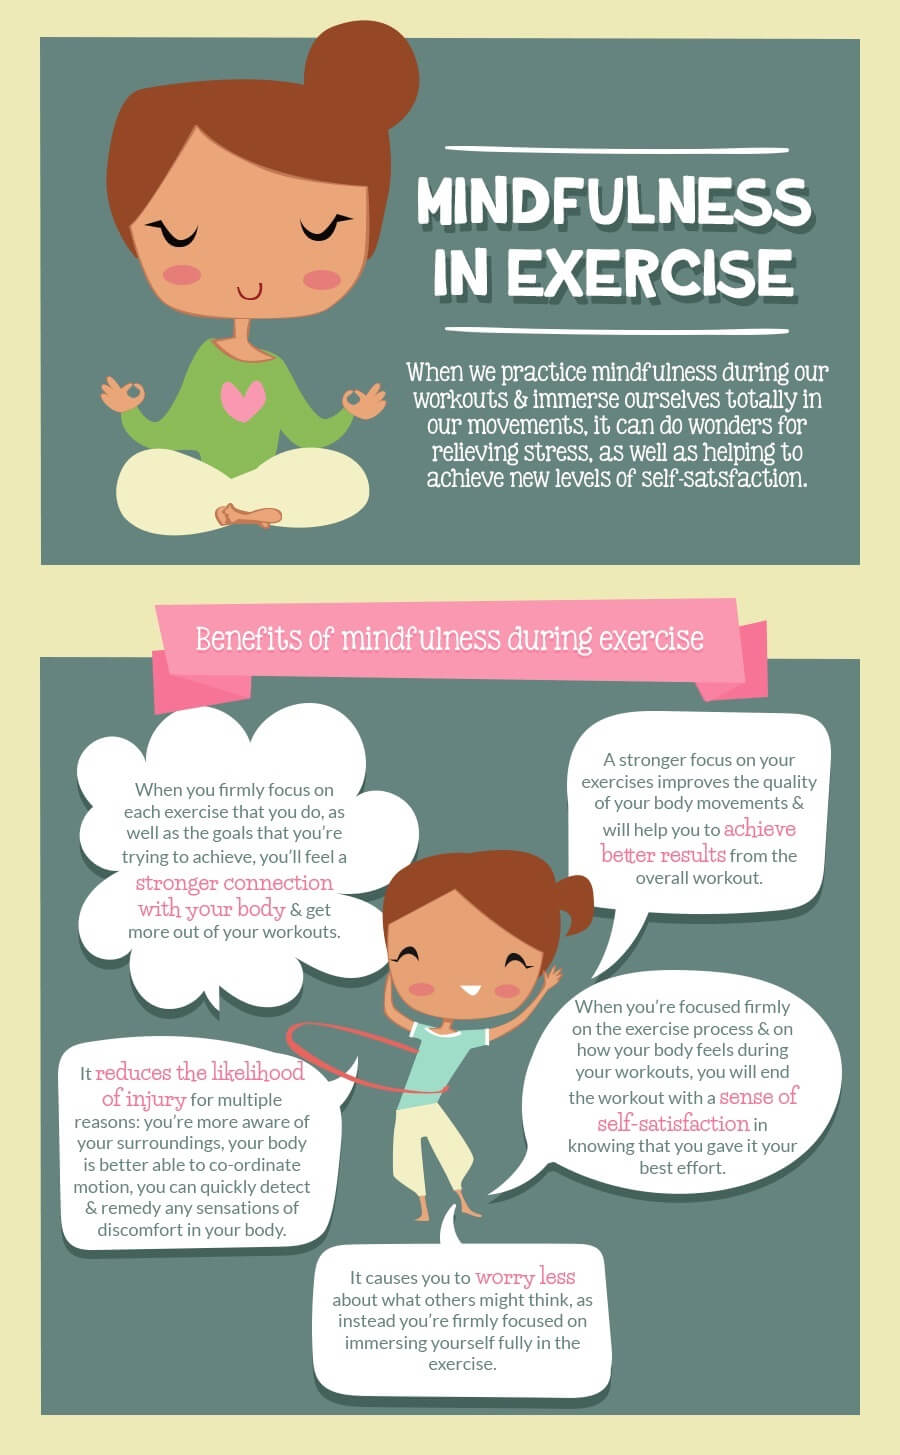 The Benefits of Mindfulness During Exercise